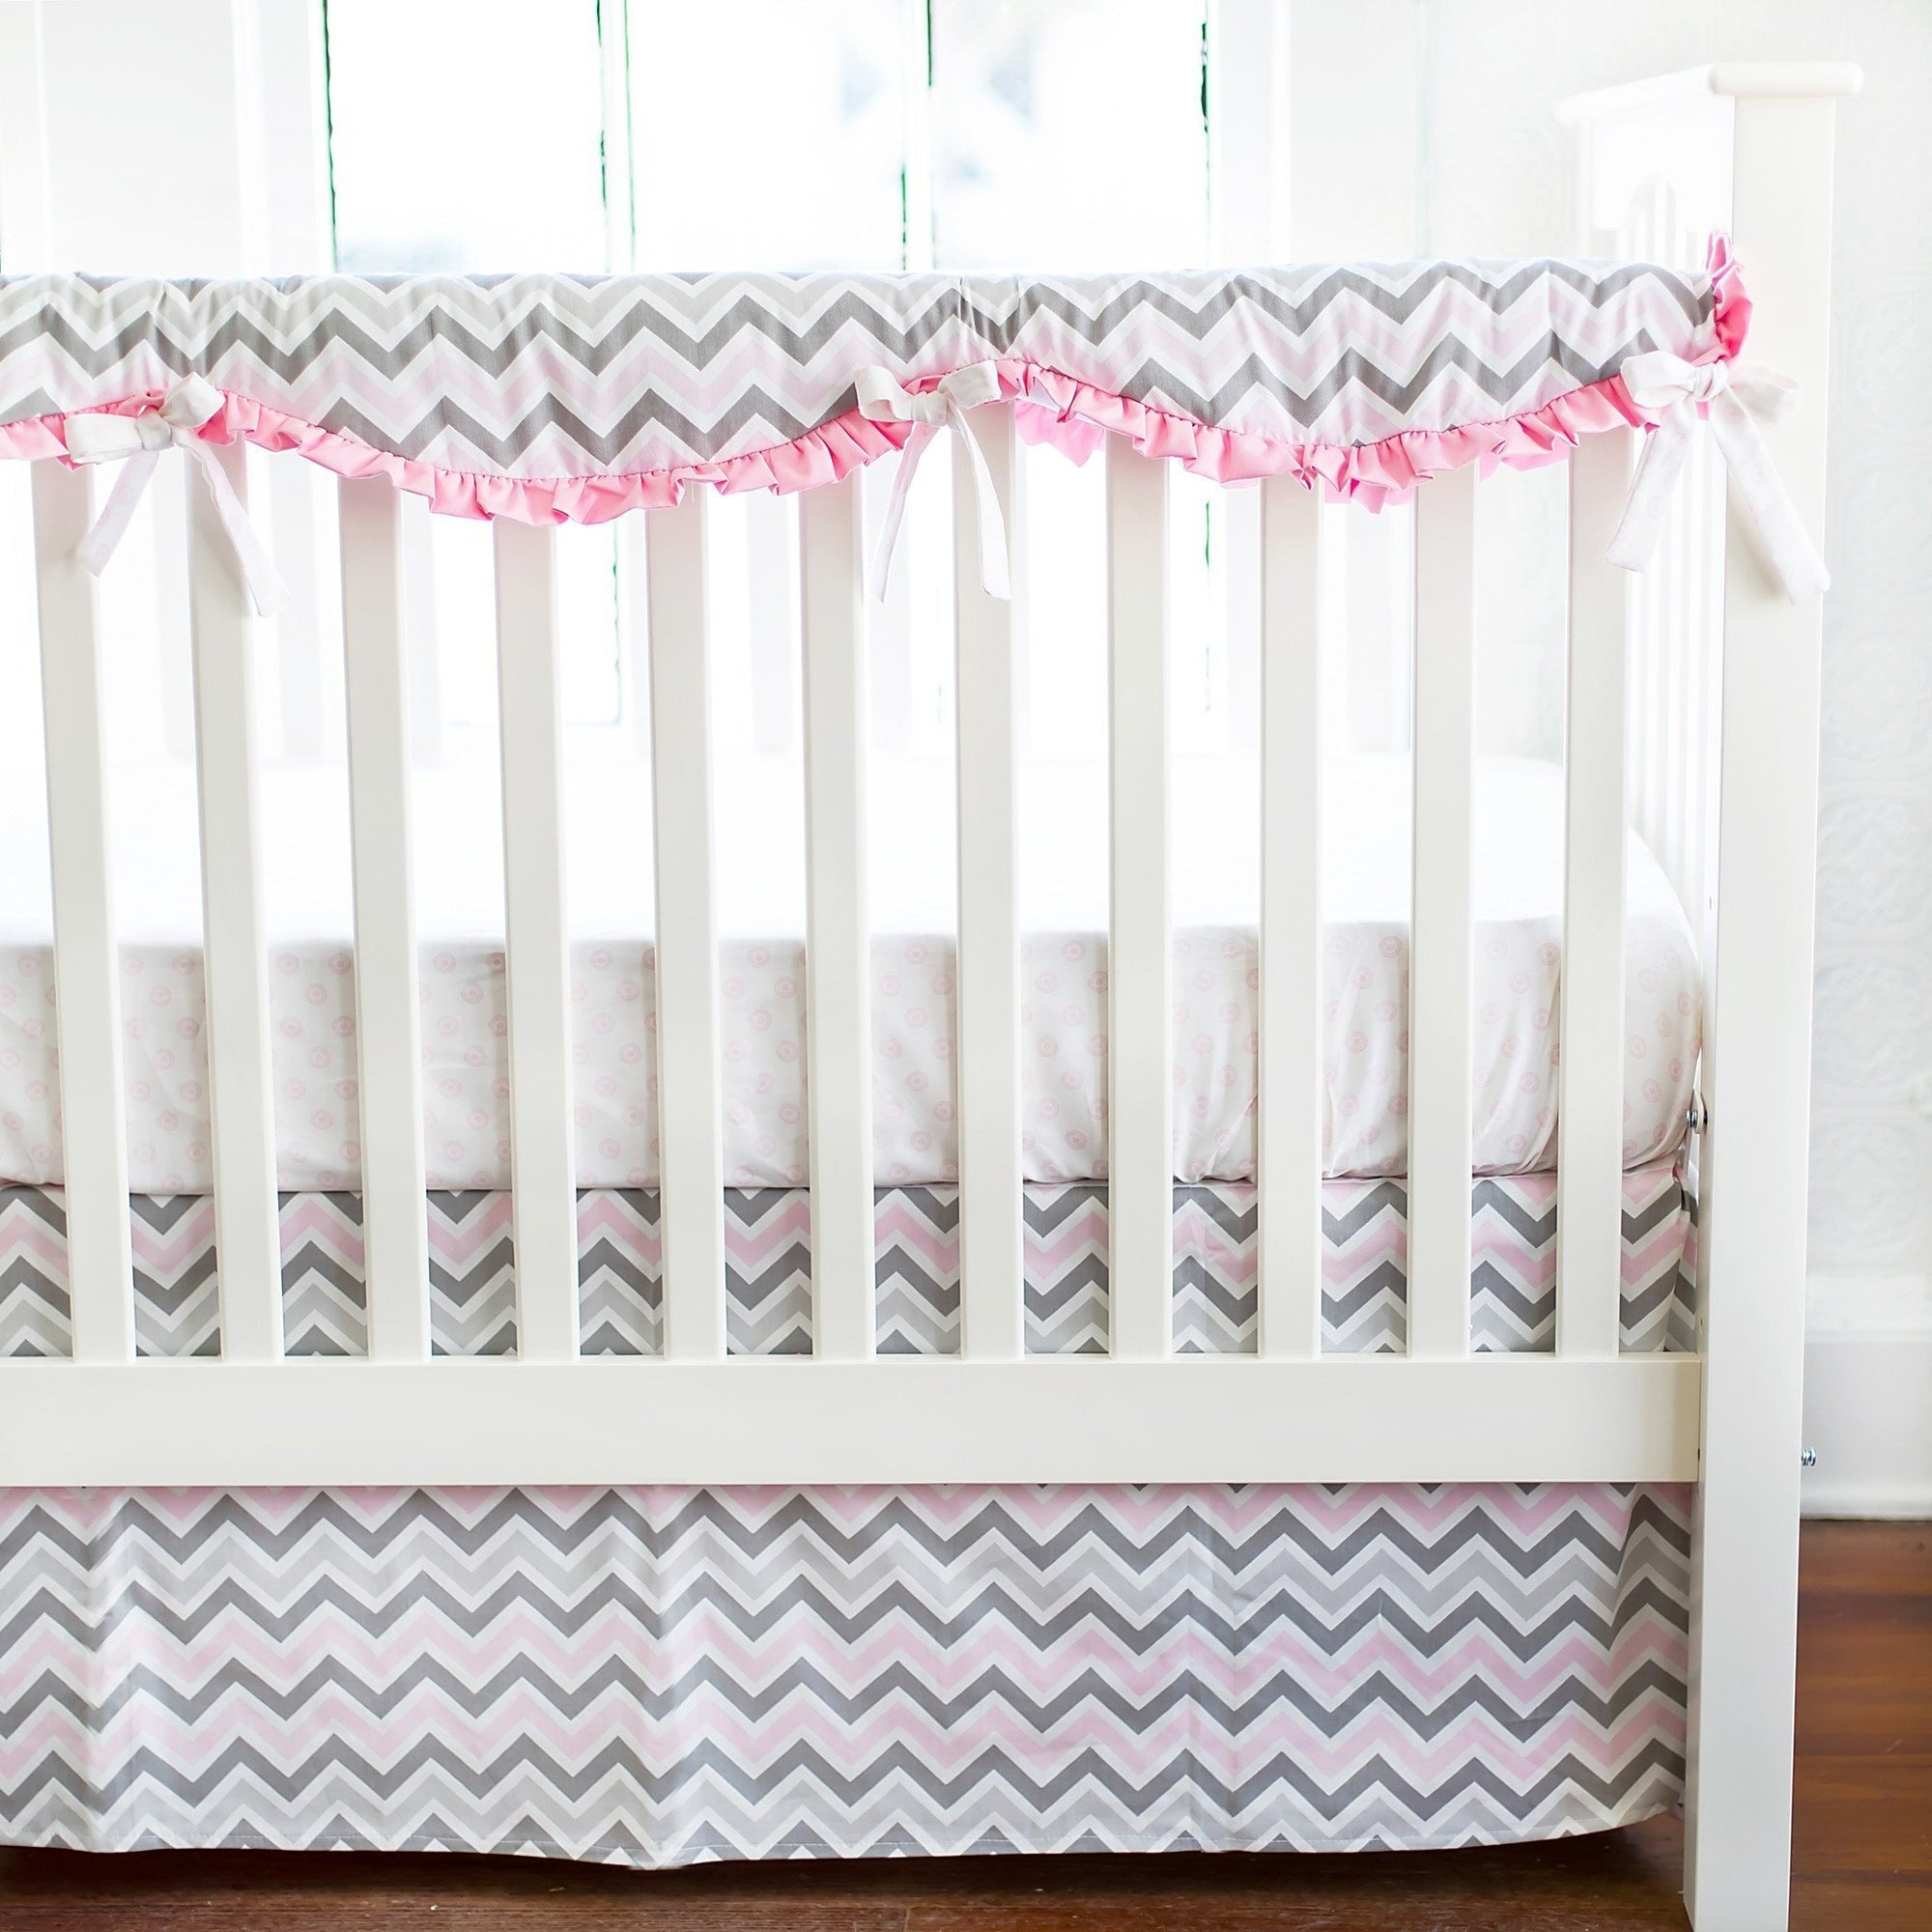 Crib Rail Cover | Peace, Love & Pink-Crib Rail Cover-Jack and Jill Boutique